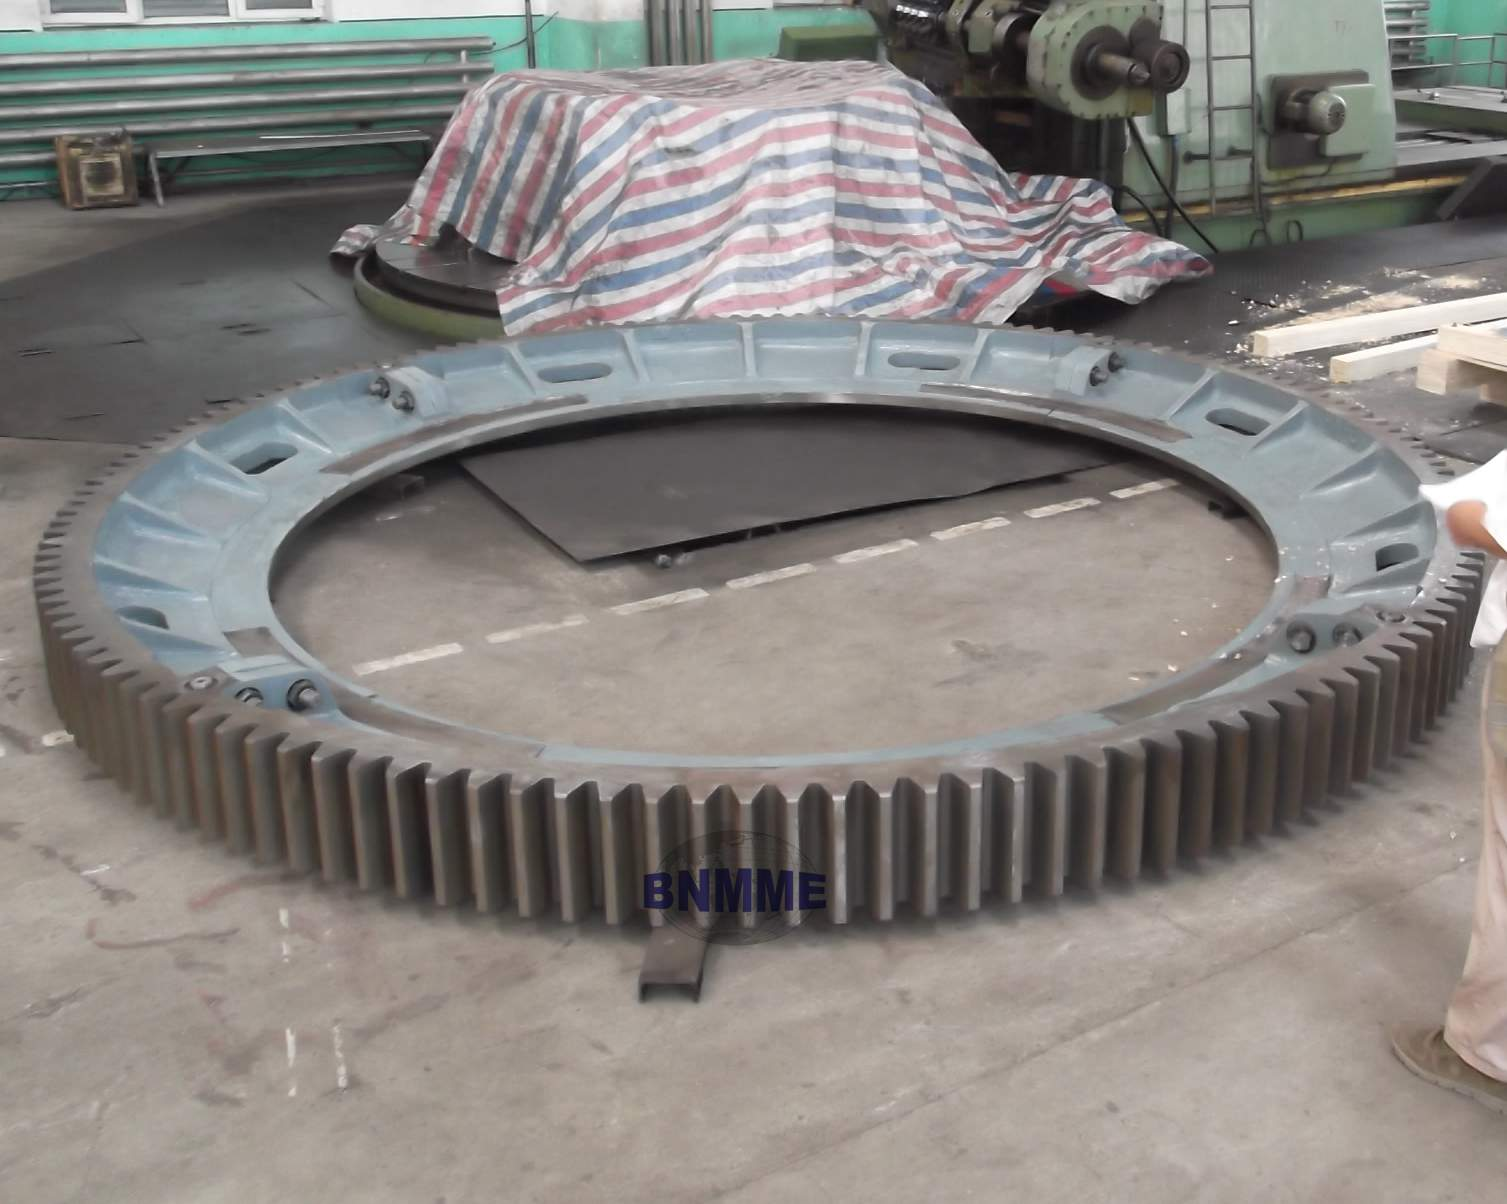 BNMME girth gear for mining, cement and crusher